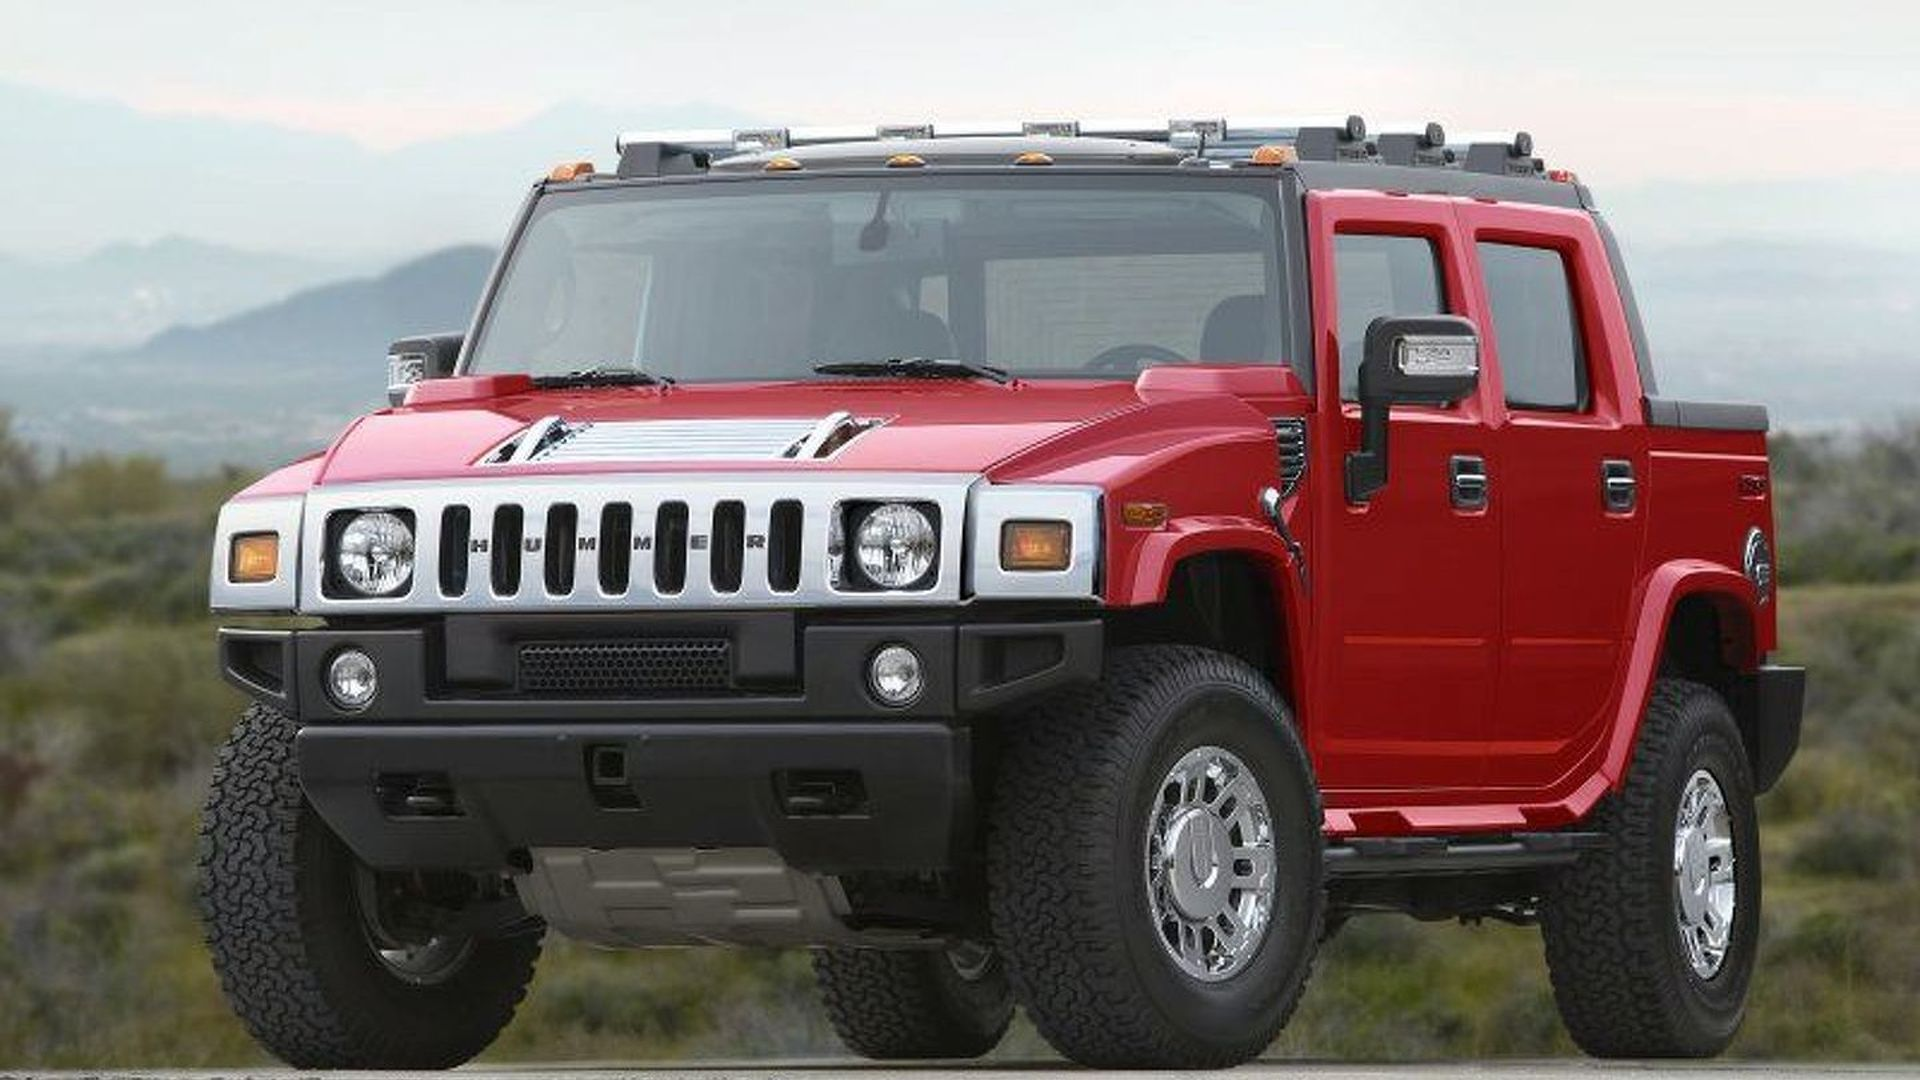 Hummer H2 Wallpapers Images Photos Pictures Backgrounds